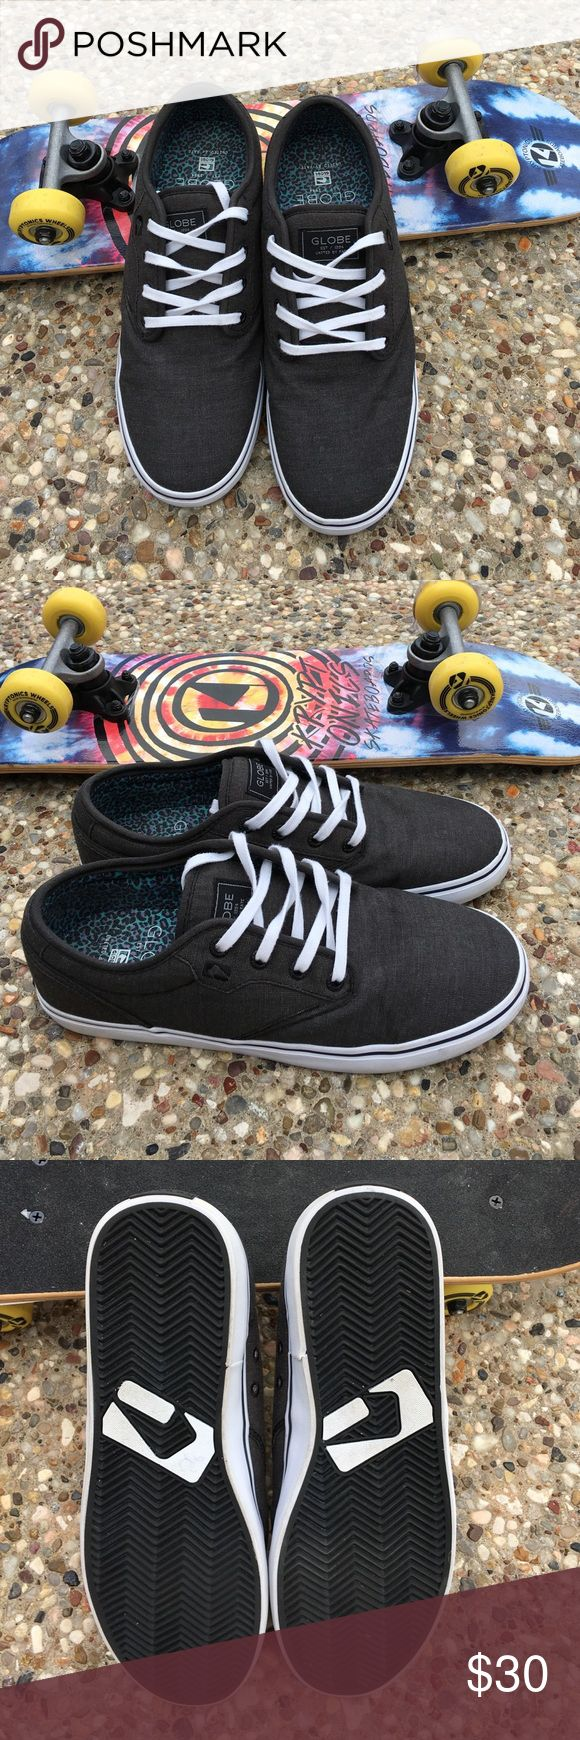 Men's Canvas Skateboard Sneakers By Globe 9.5 These shoes are in great condition. My son only wore them a few times. No noticeable flaws. Really comfy Very clean inside and out. They are a light black color. Globe Shoes Sneakers